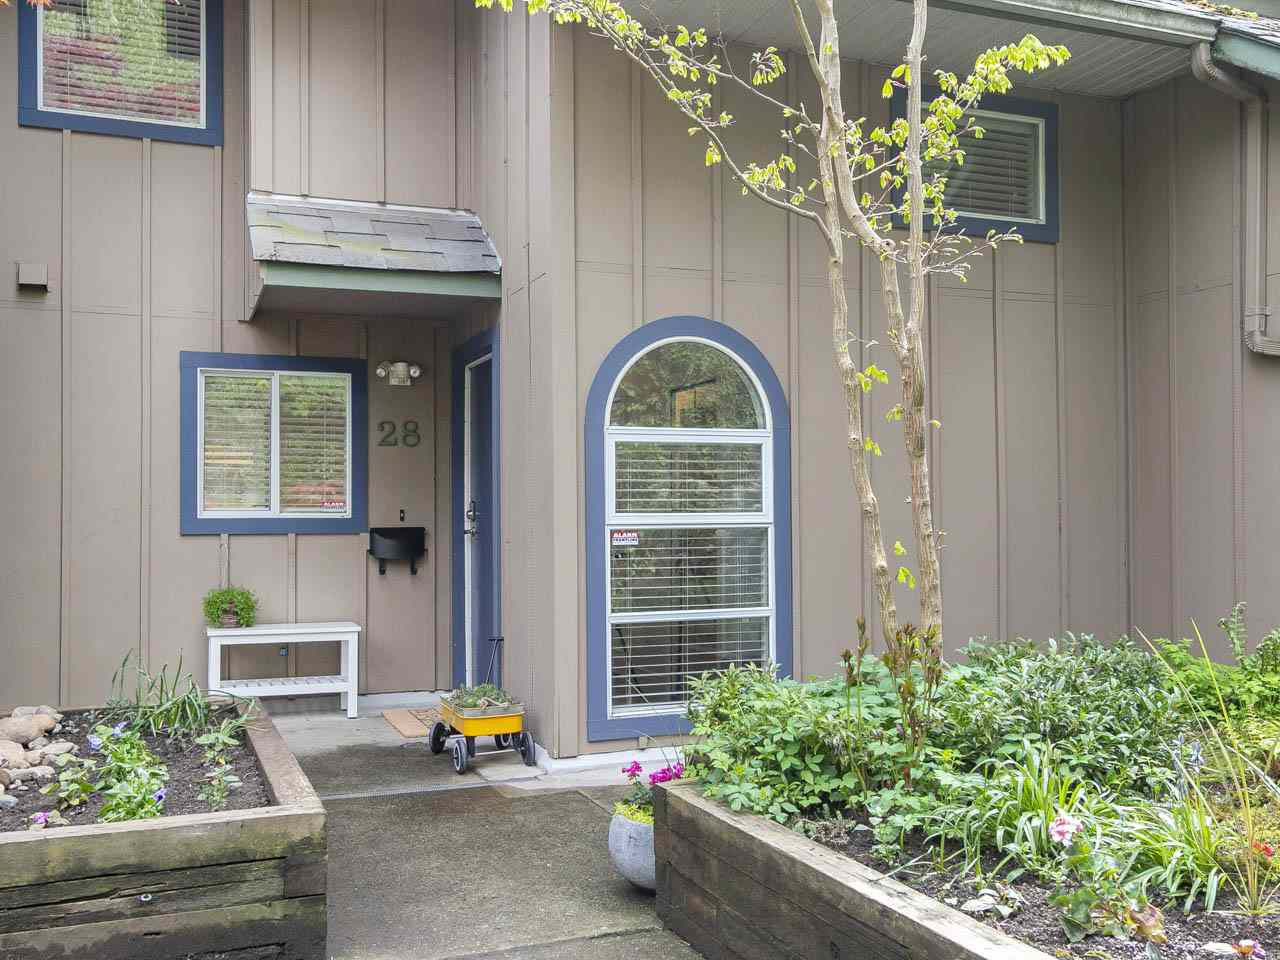 """Main Photo: 28 900 W 17 Street in North Vancouver: Hamilton Townhouse for sale in """"Foxwood Hills"""" : MLS®# R2262467"""